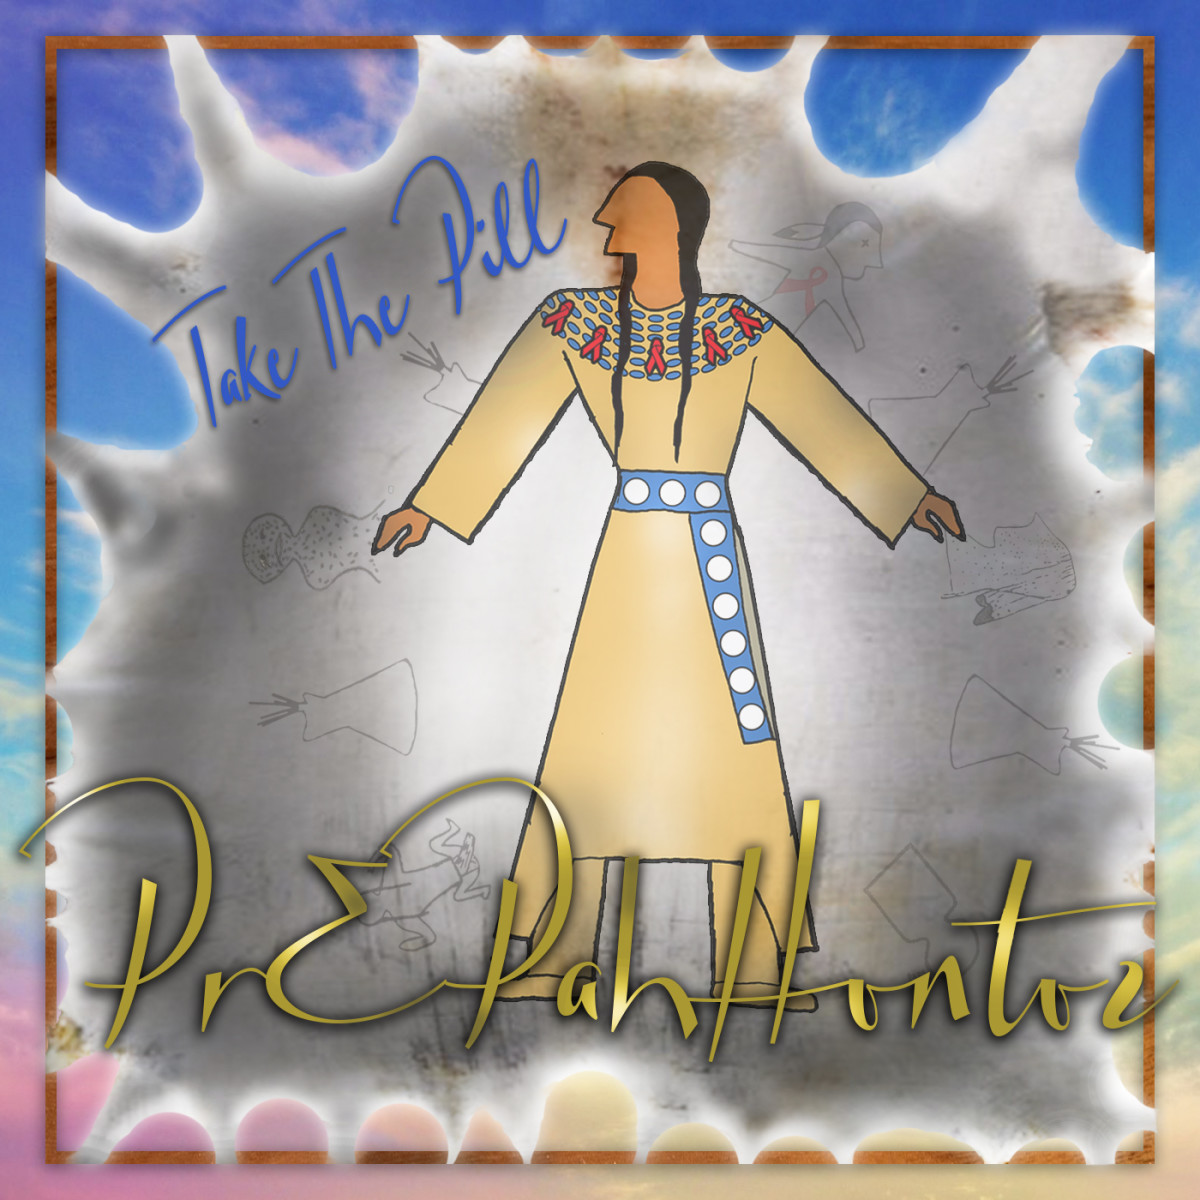 Take The Pill CD single cover.